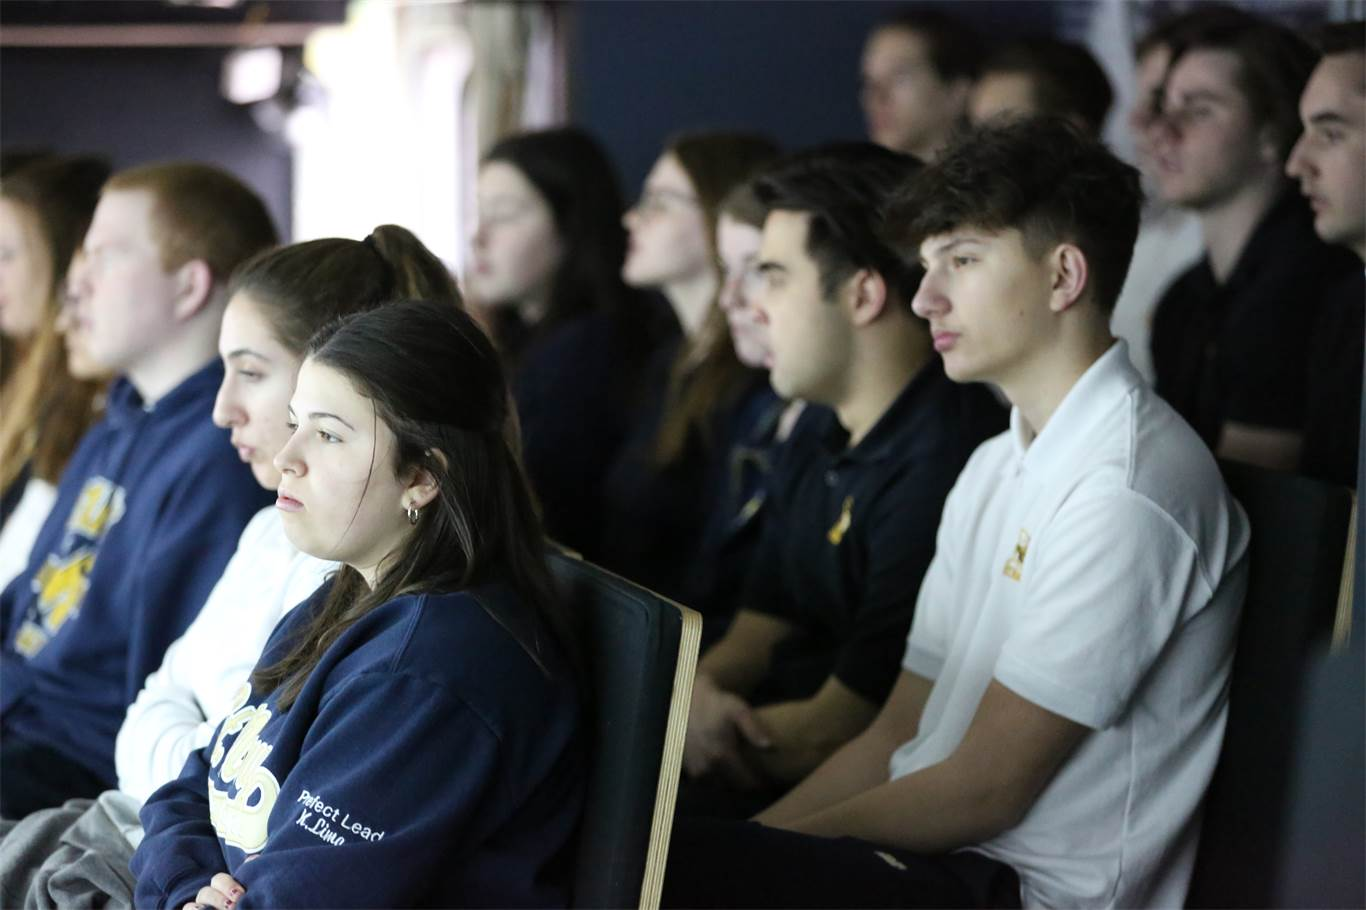 Mobile classroom explores world genocide with secondary students